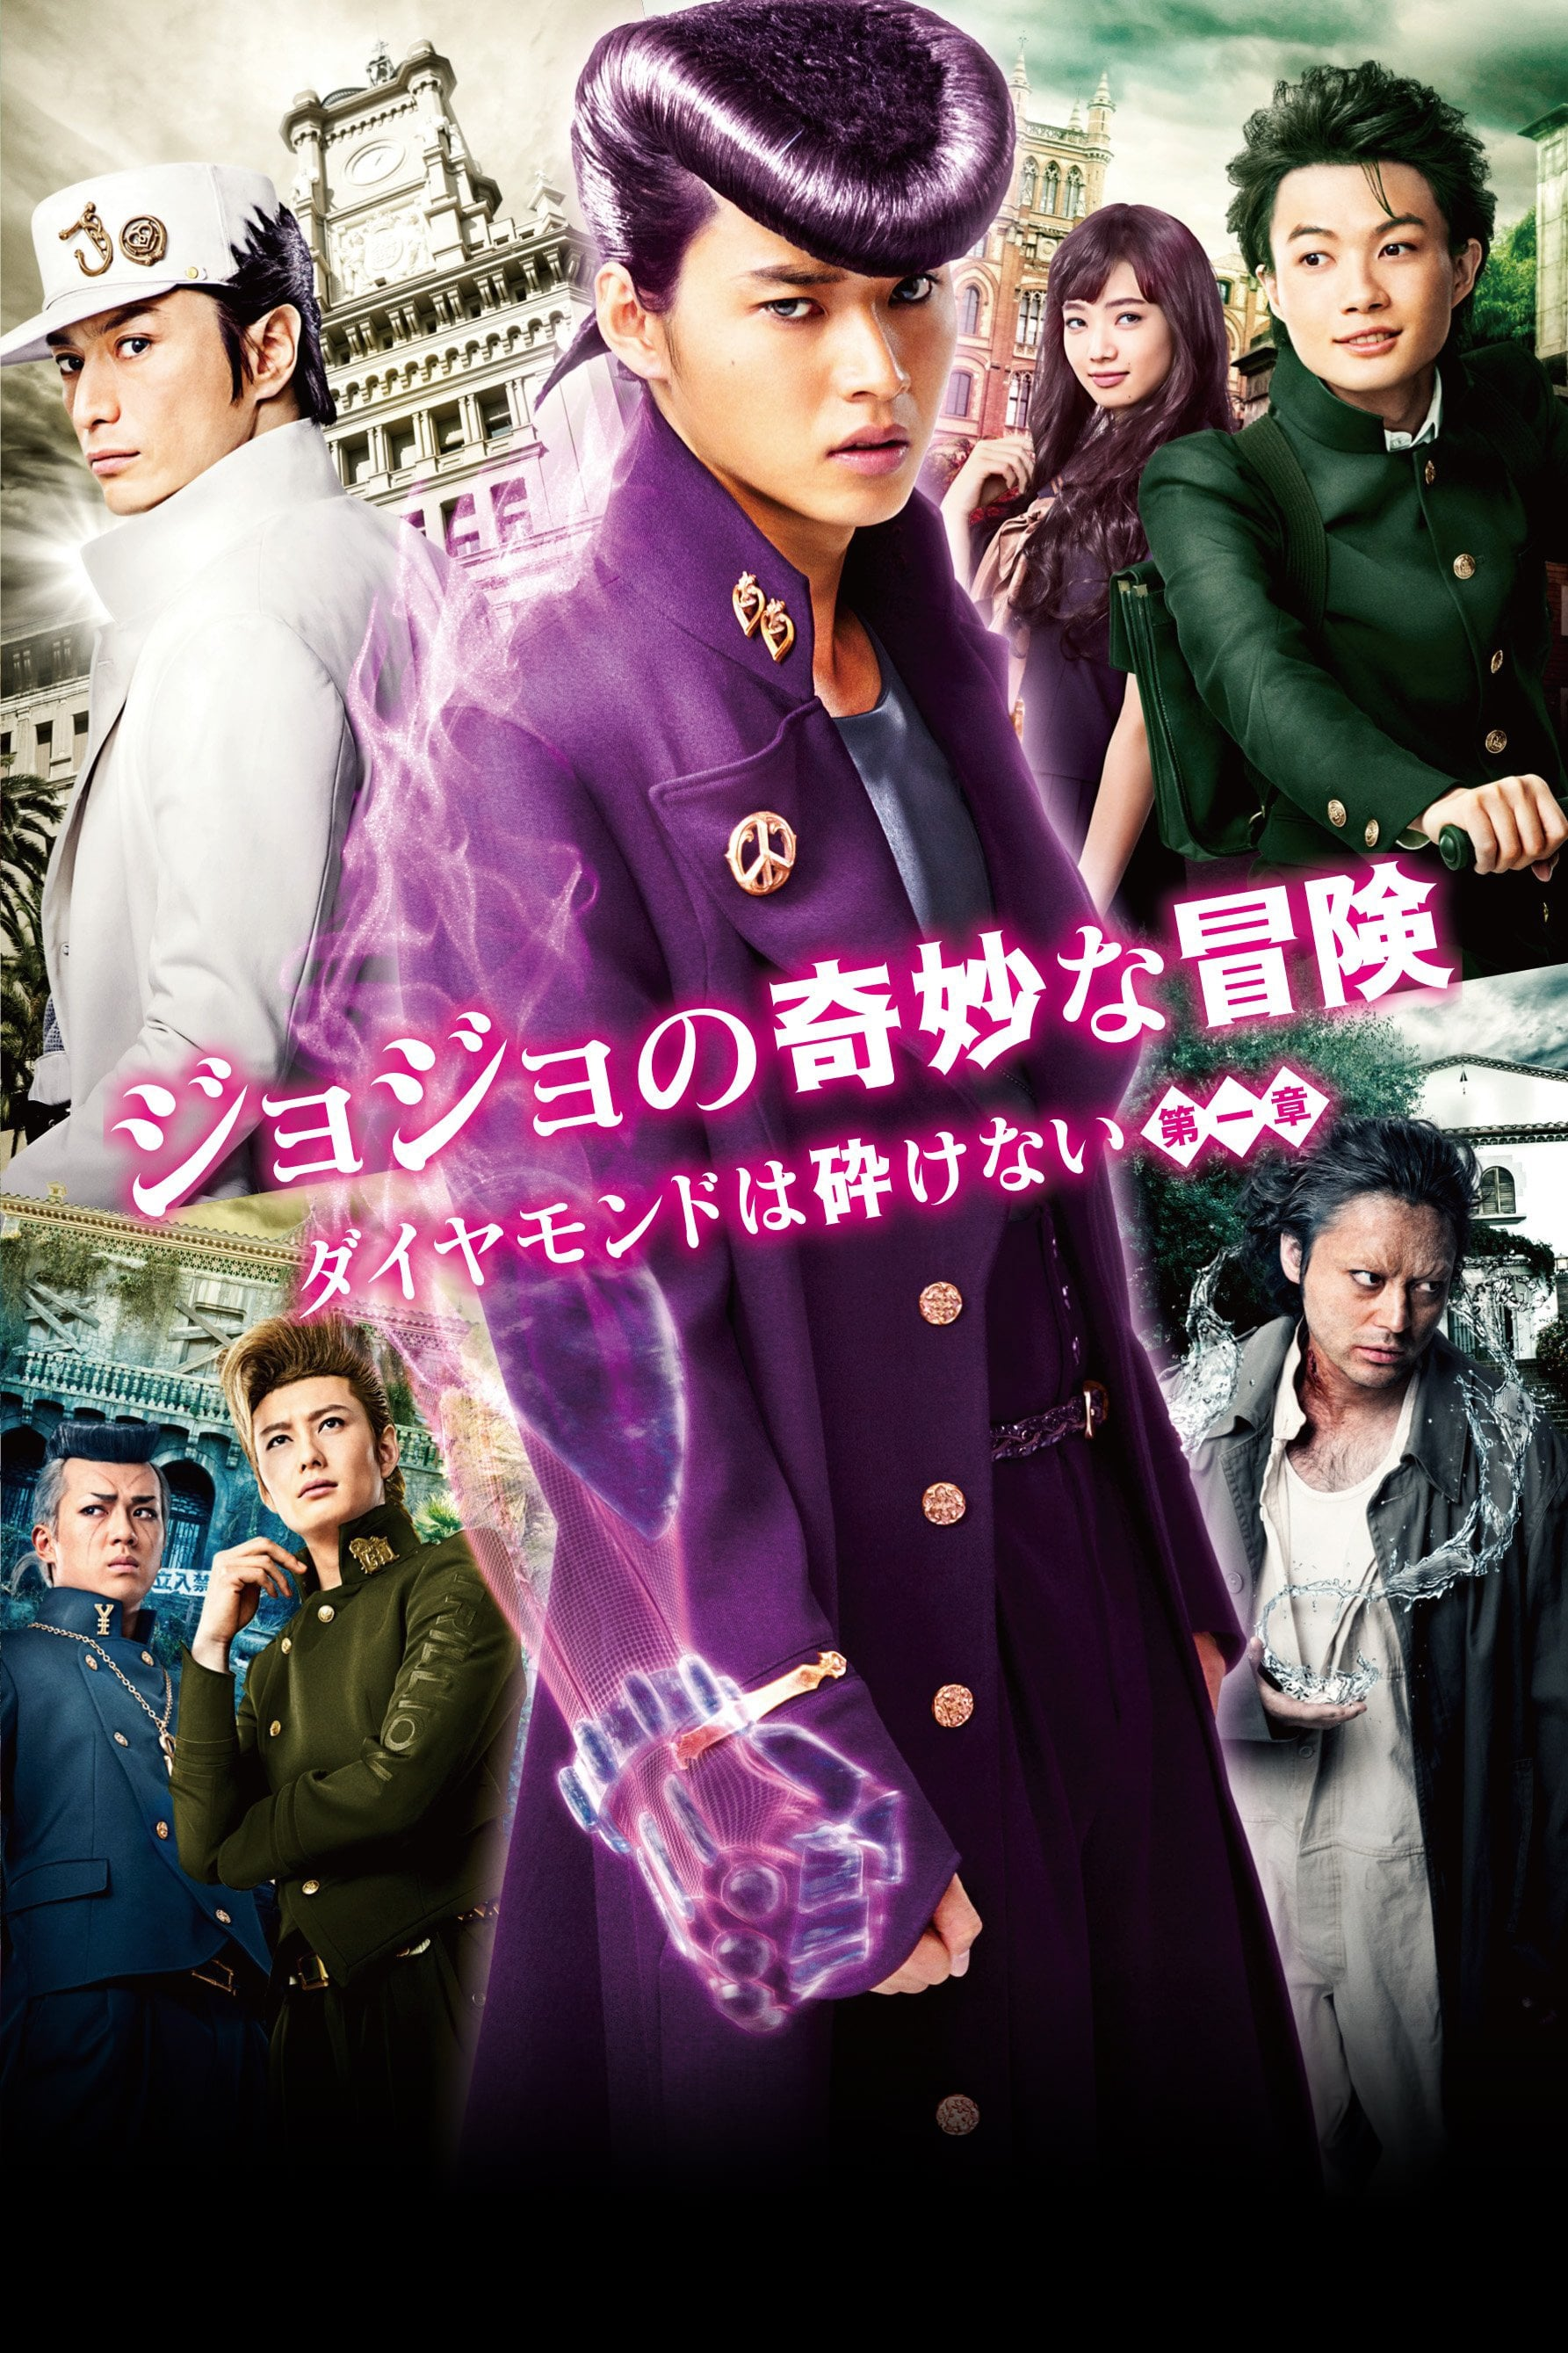 Póster Jojo?s Bizarre Adventure: Diamond is Unbreakable